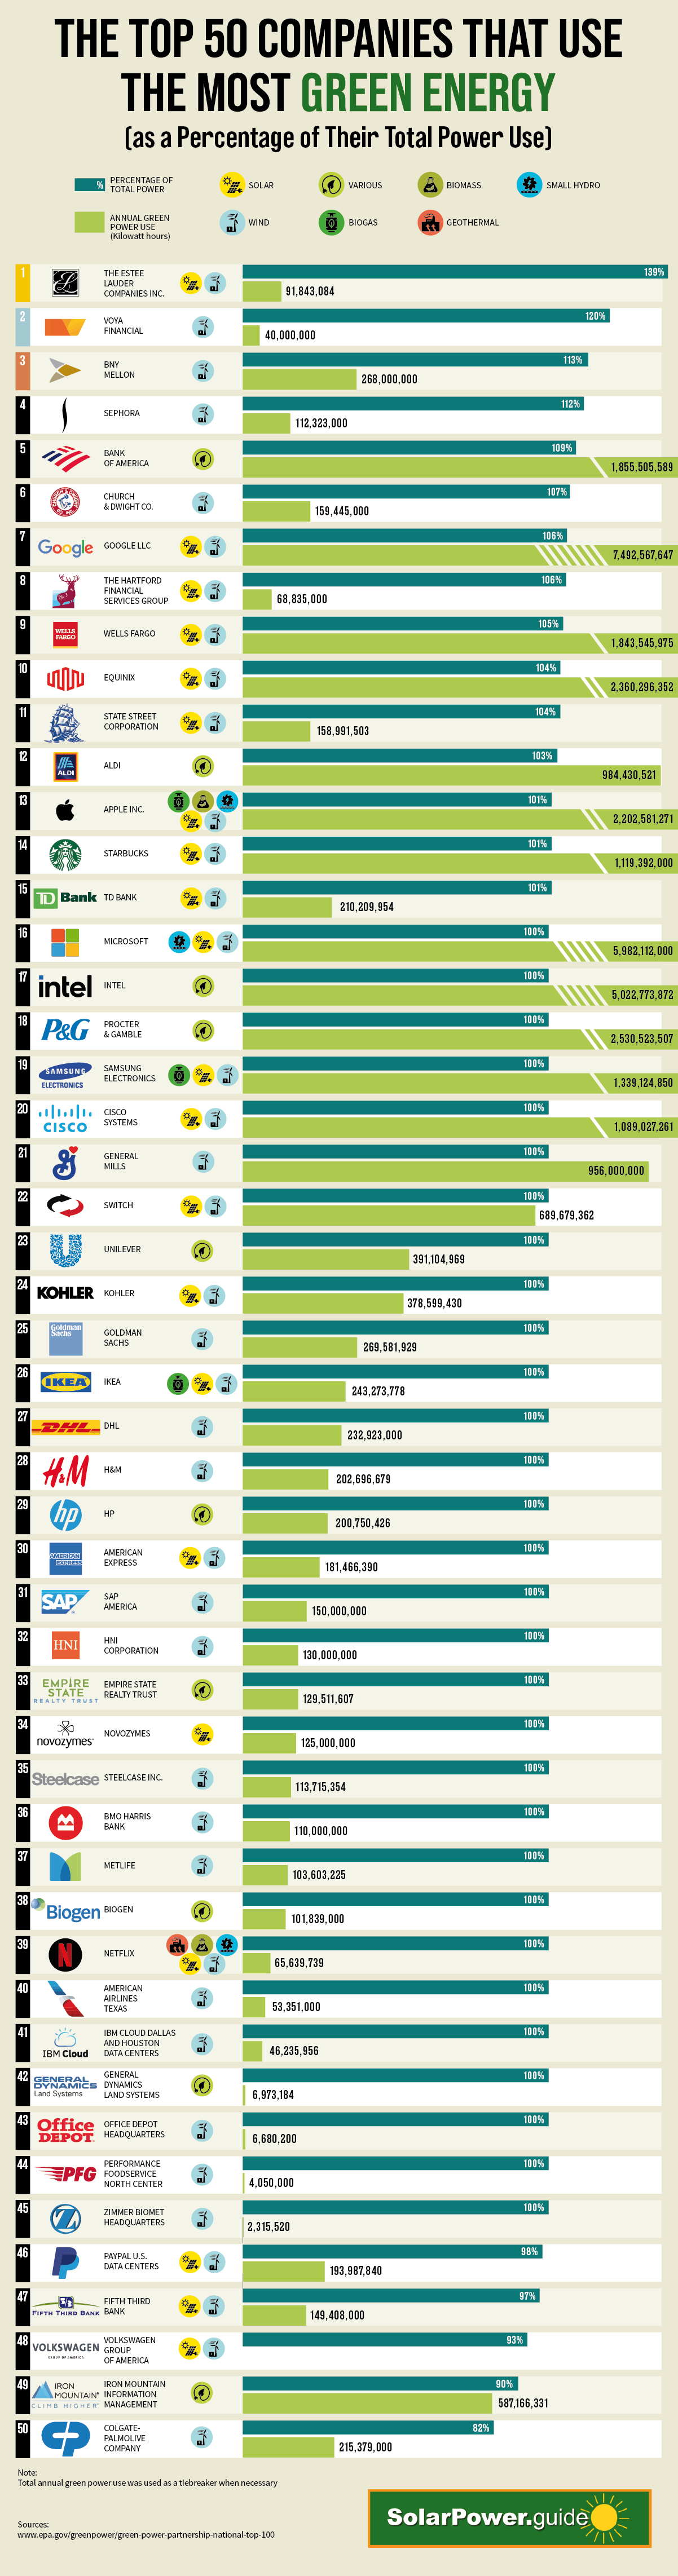 The 50 Companies Using the Highest Percentage of Green Energy